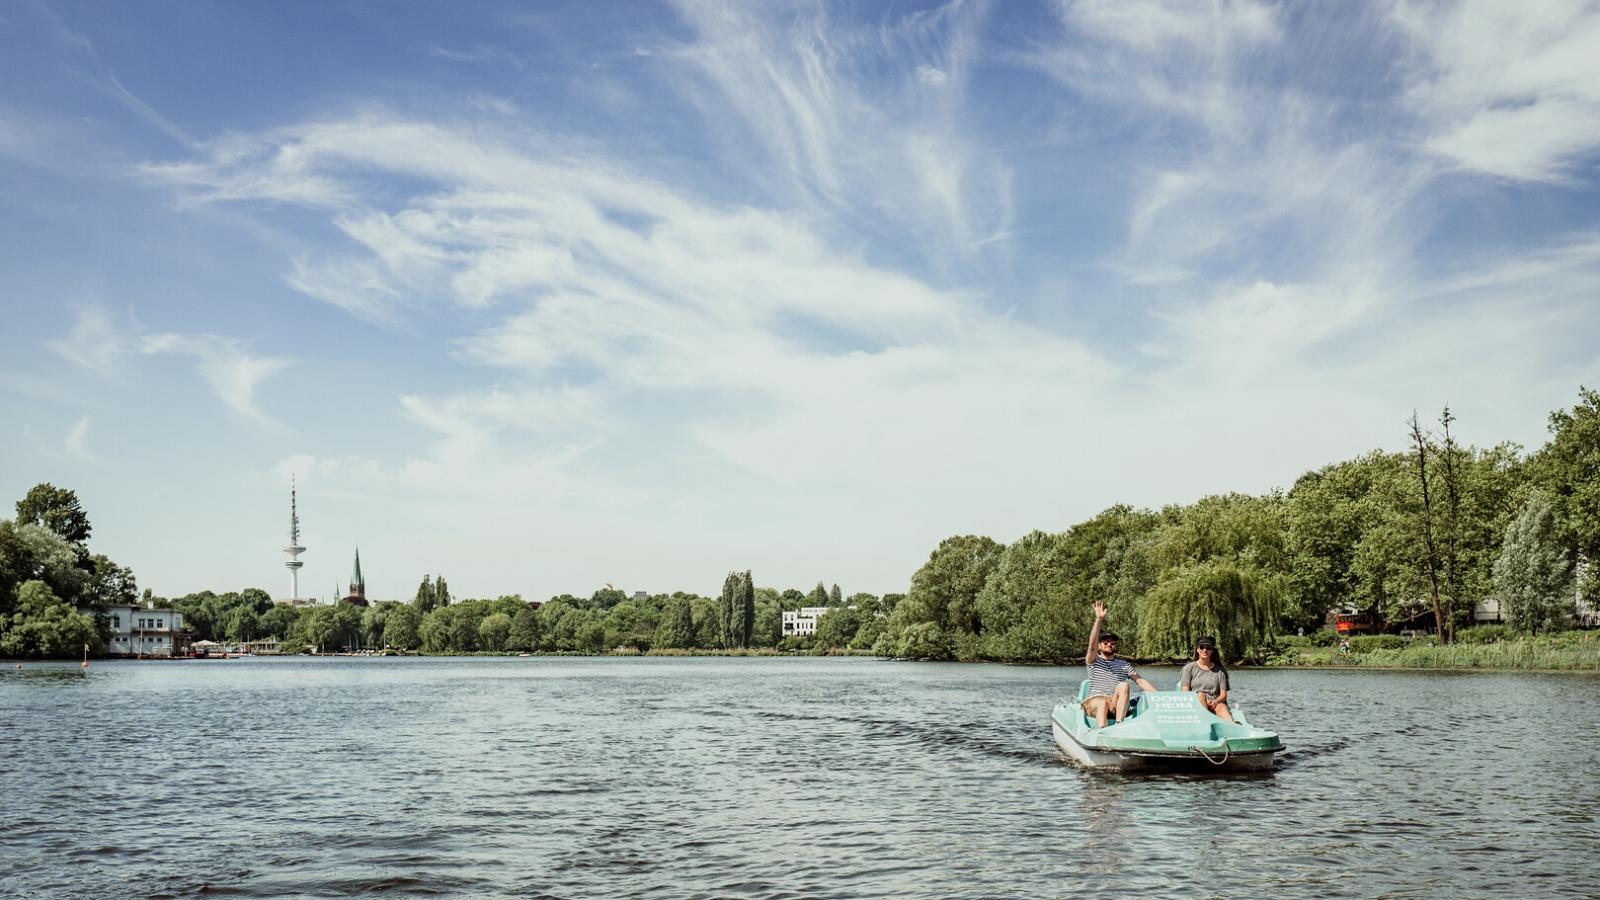 Pedal boat on Lake Alster